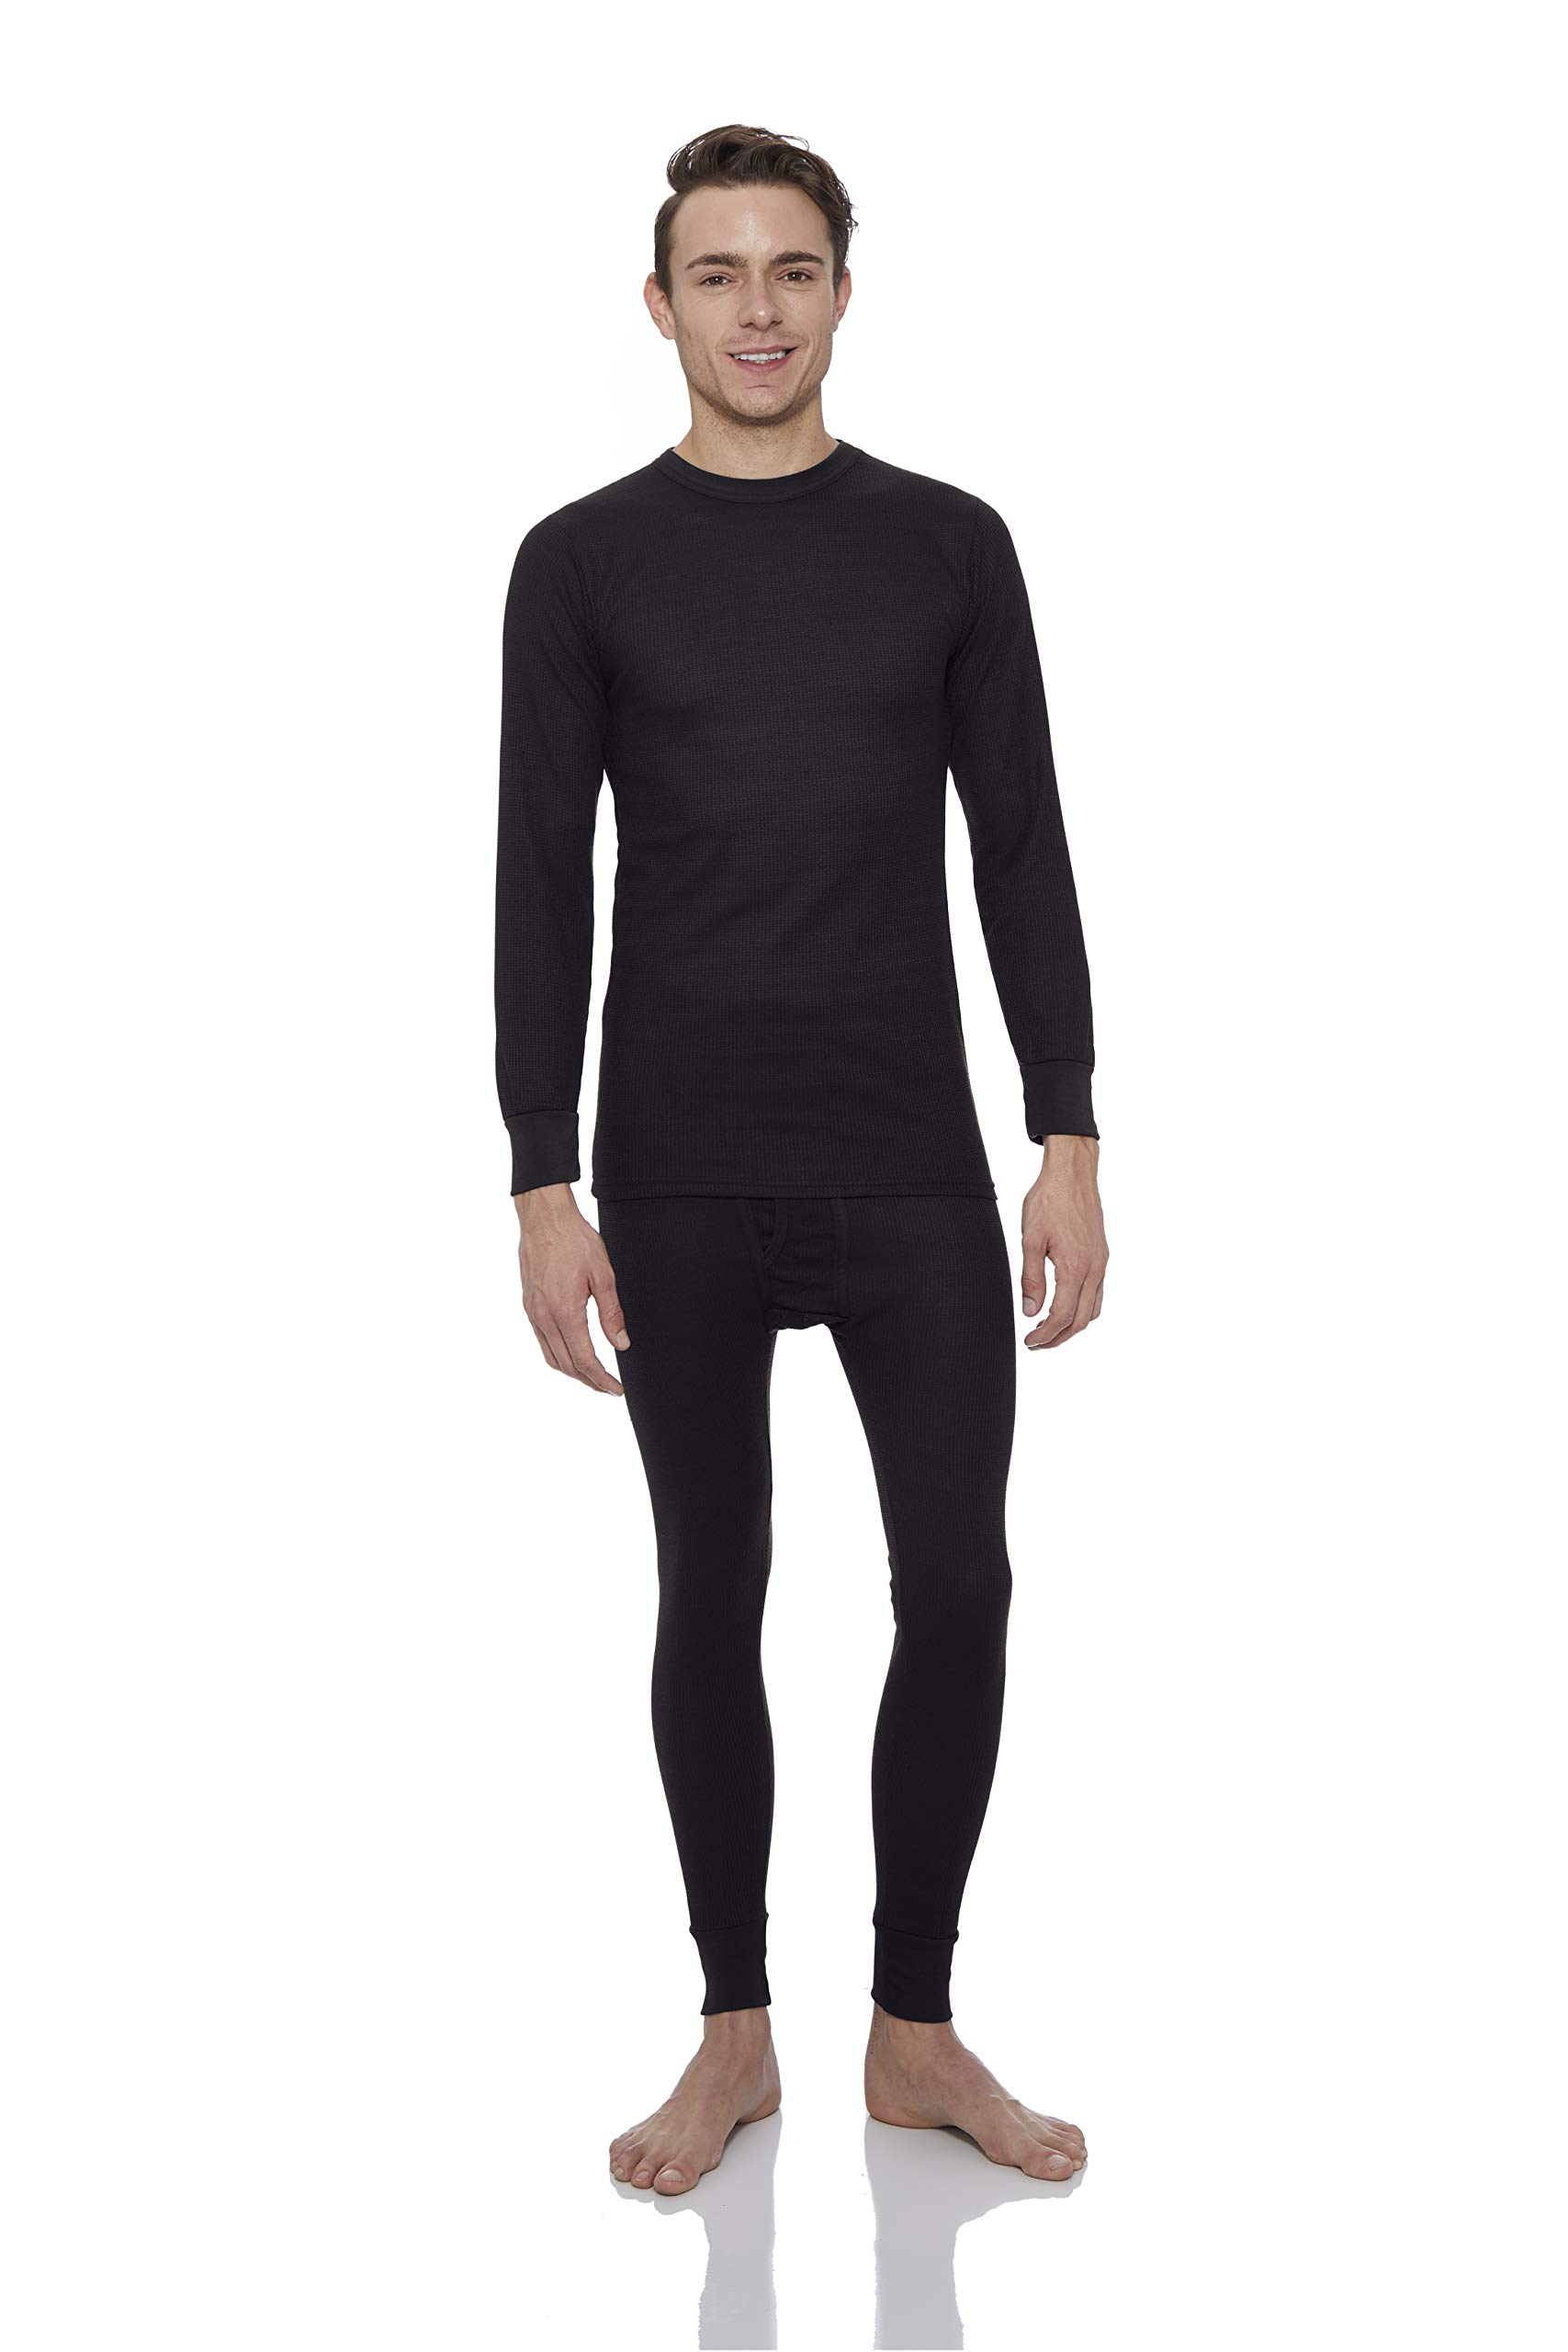 Rocky Thermal Underwear for Men Waffle Thermals Men's Base Layer Long John Set Black by Rocky